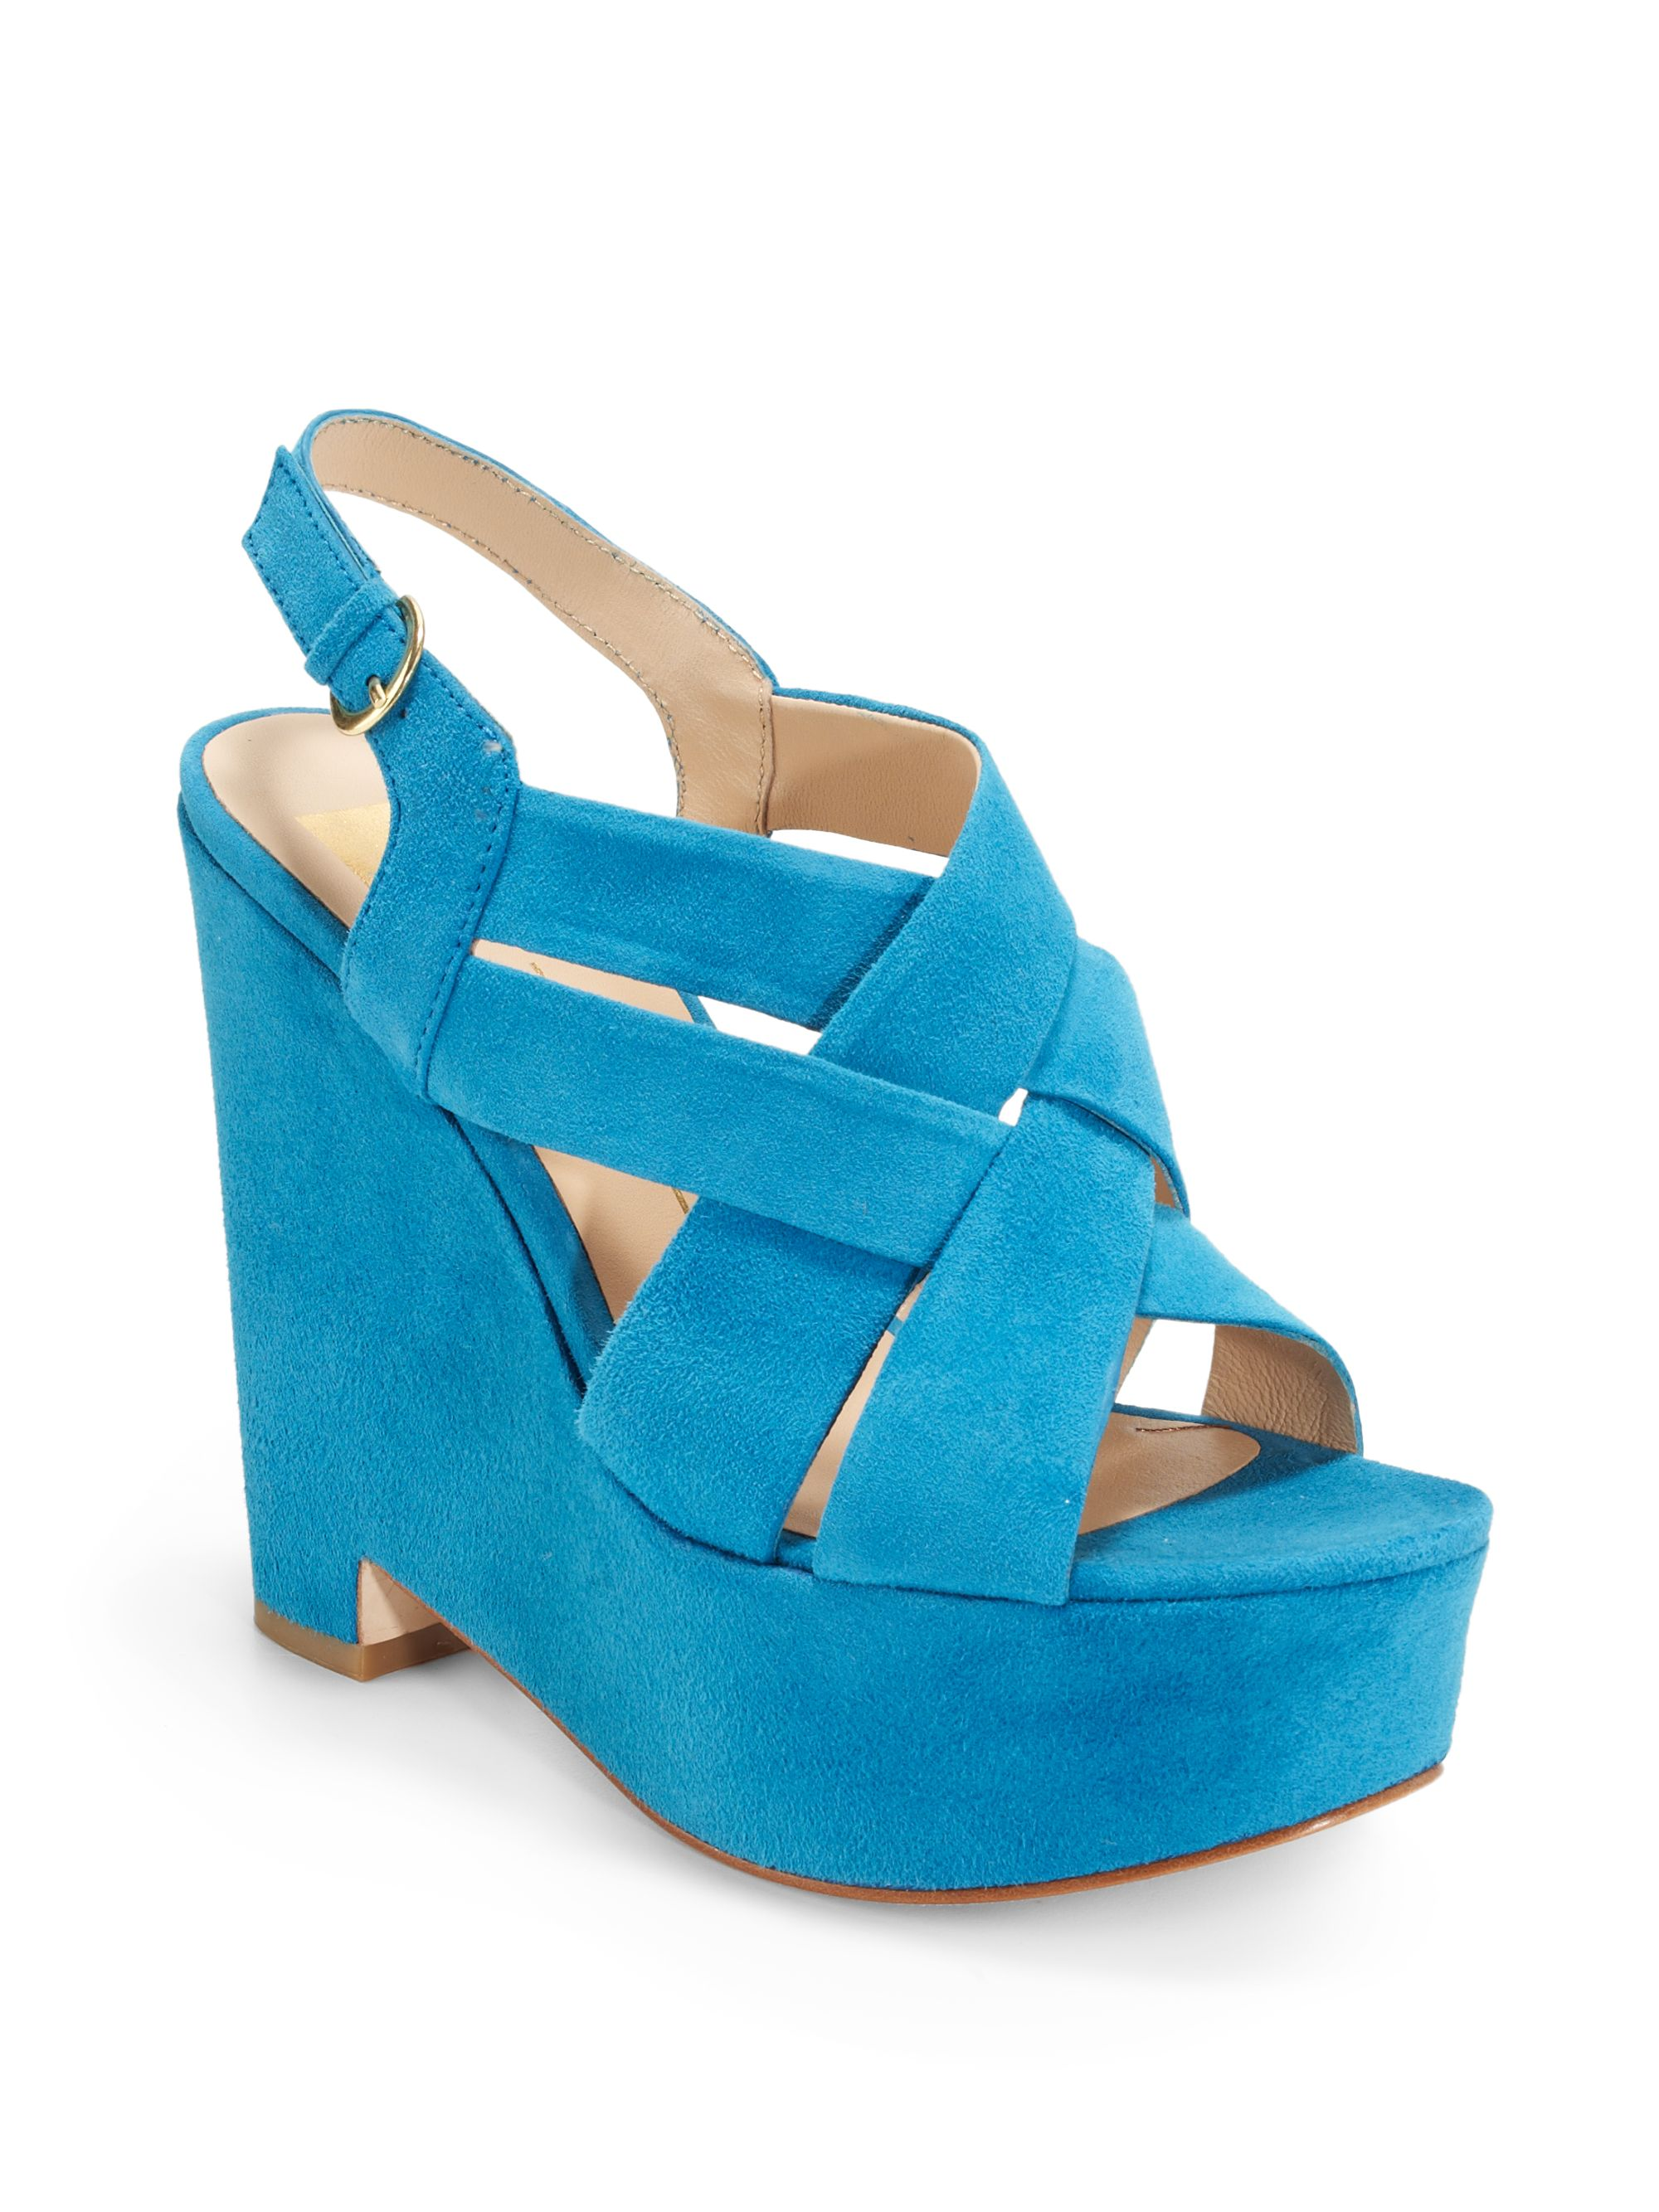 Dolce Vita Garren Strappy Suede Wedge Sandals In Blue Lyst